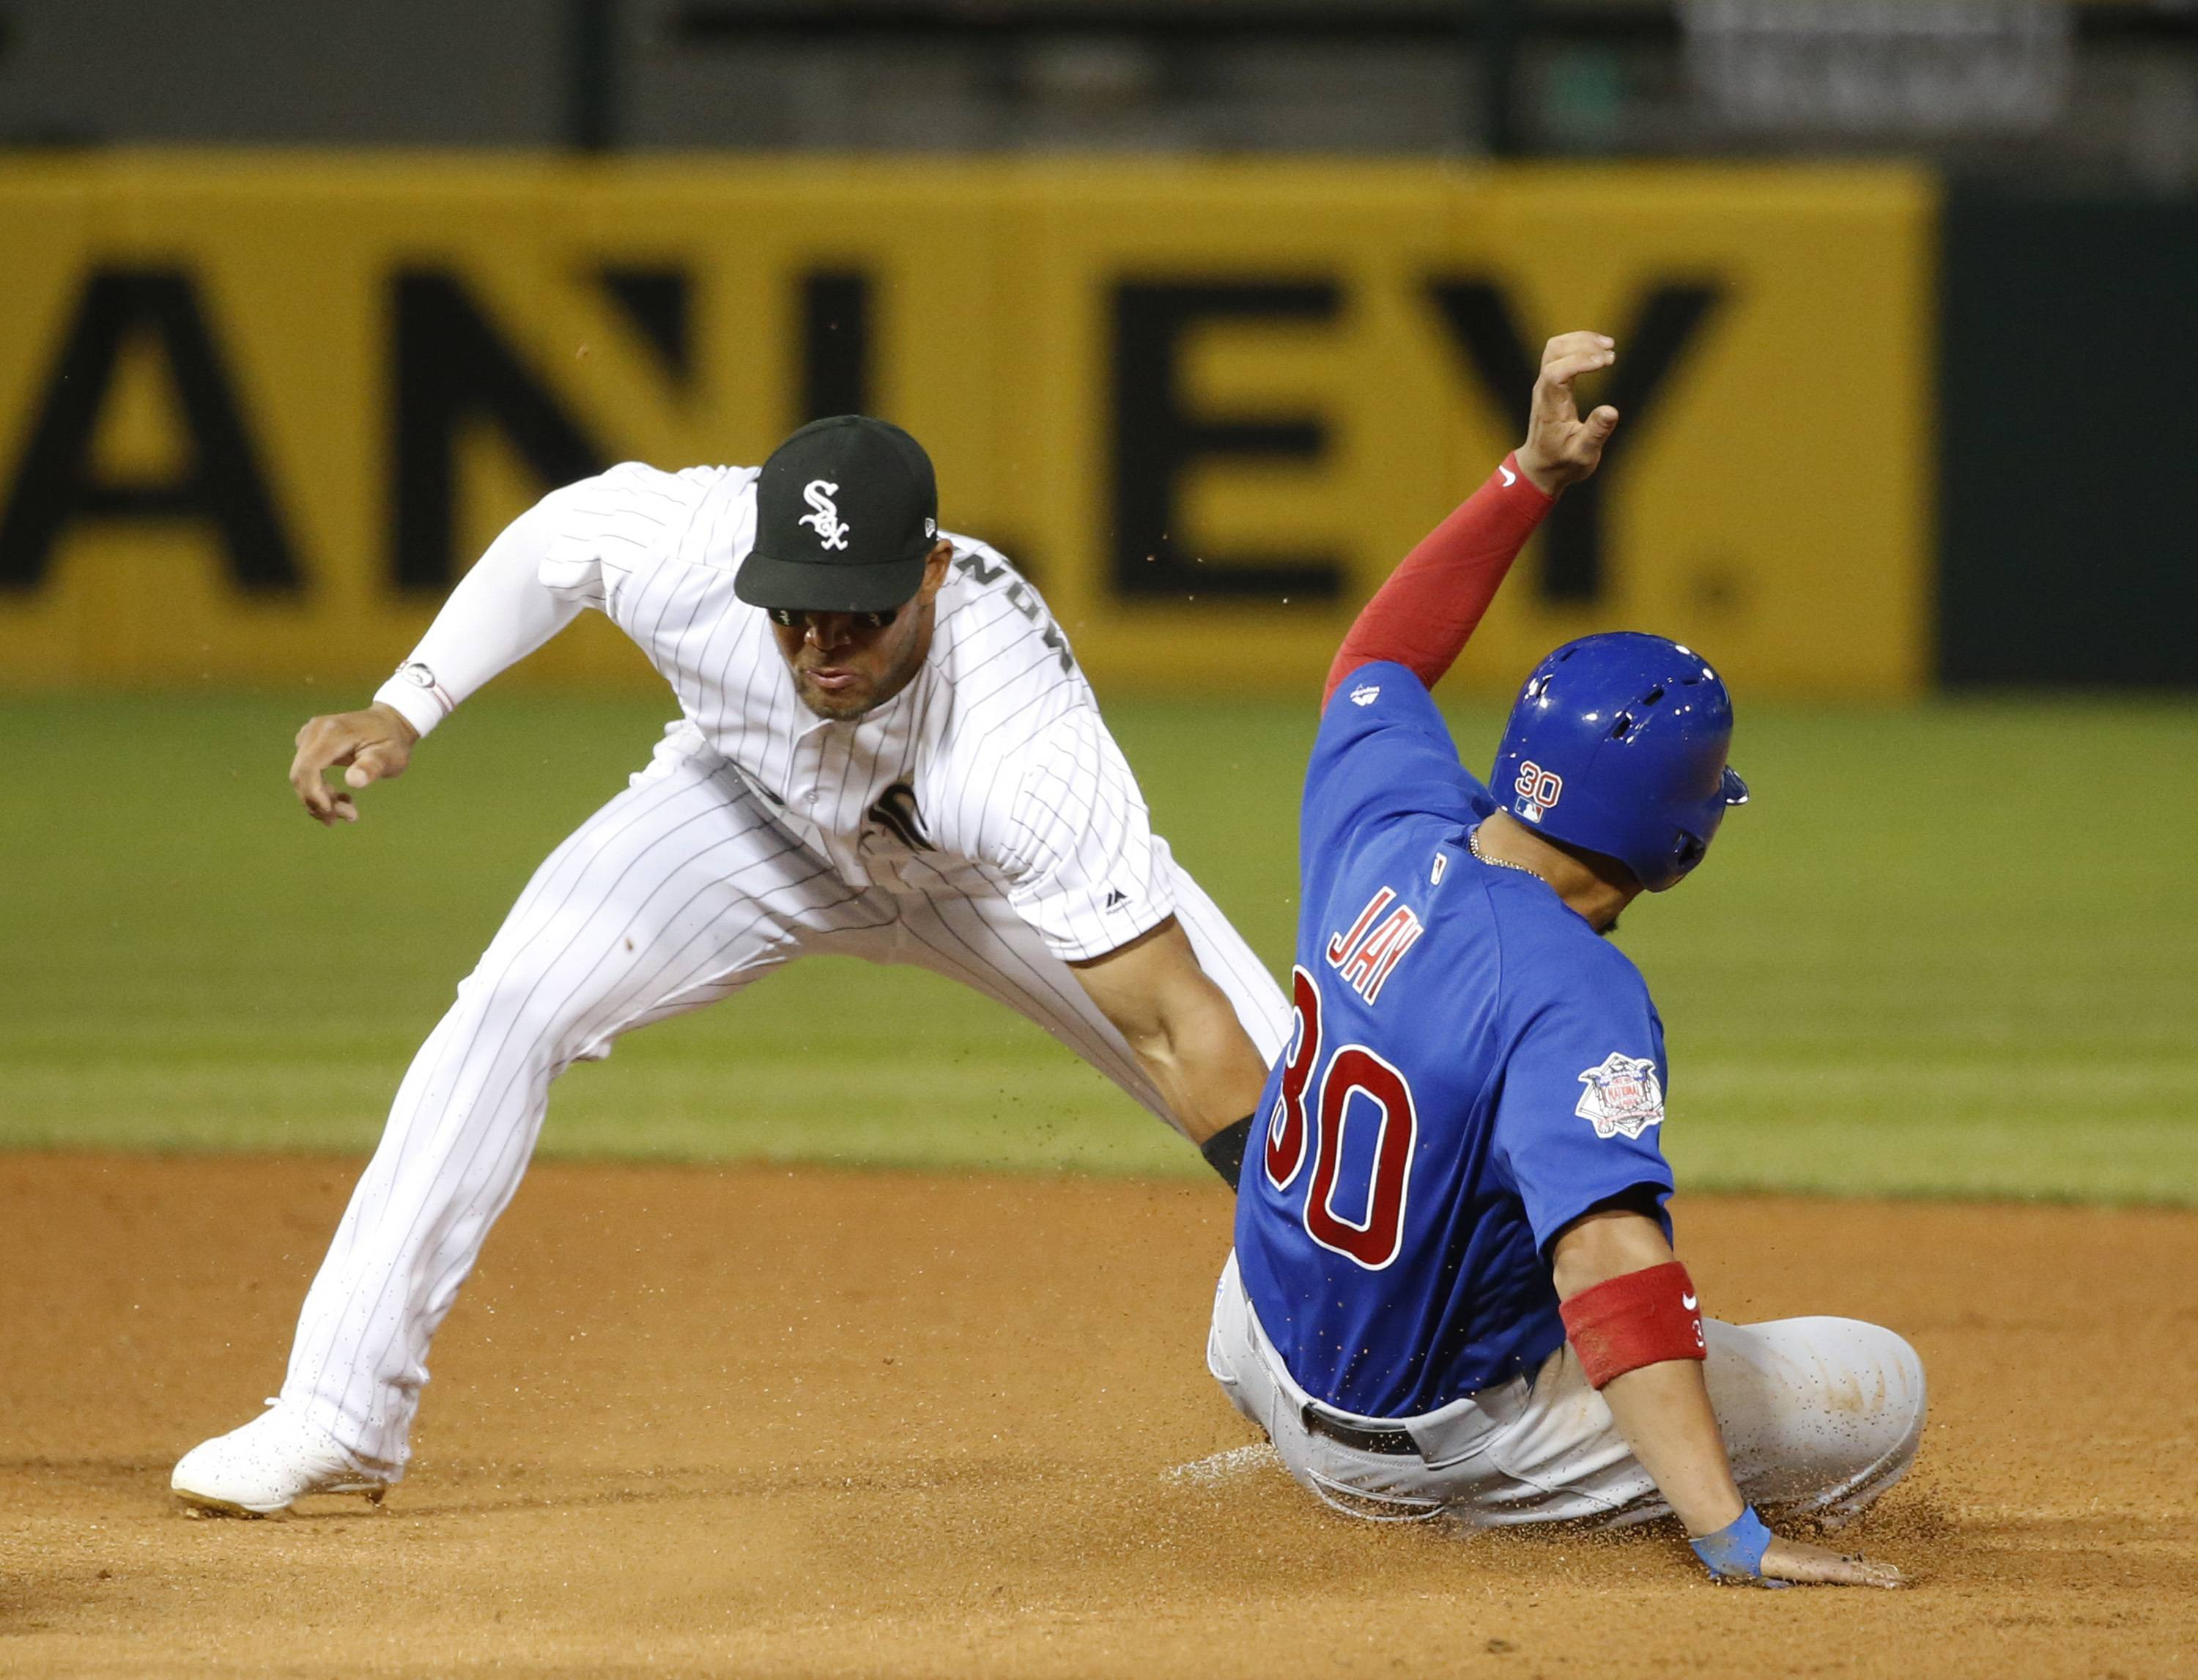 The Chicago Cubs will play six games against the White Sox in 2018, with three games at Wrigley Field in May and three games at Guarantee Rate Field in September.